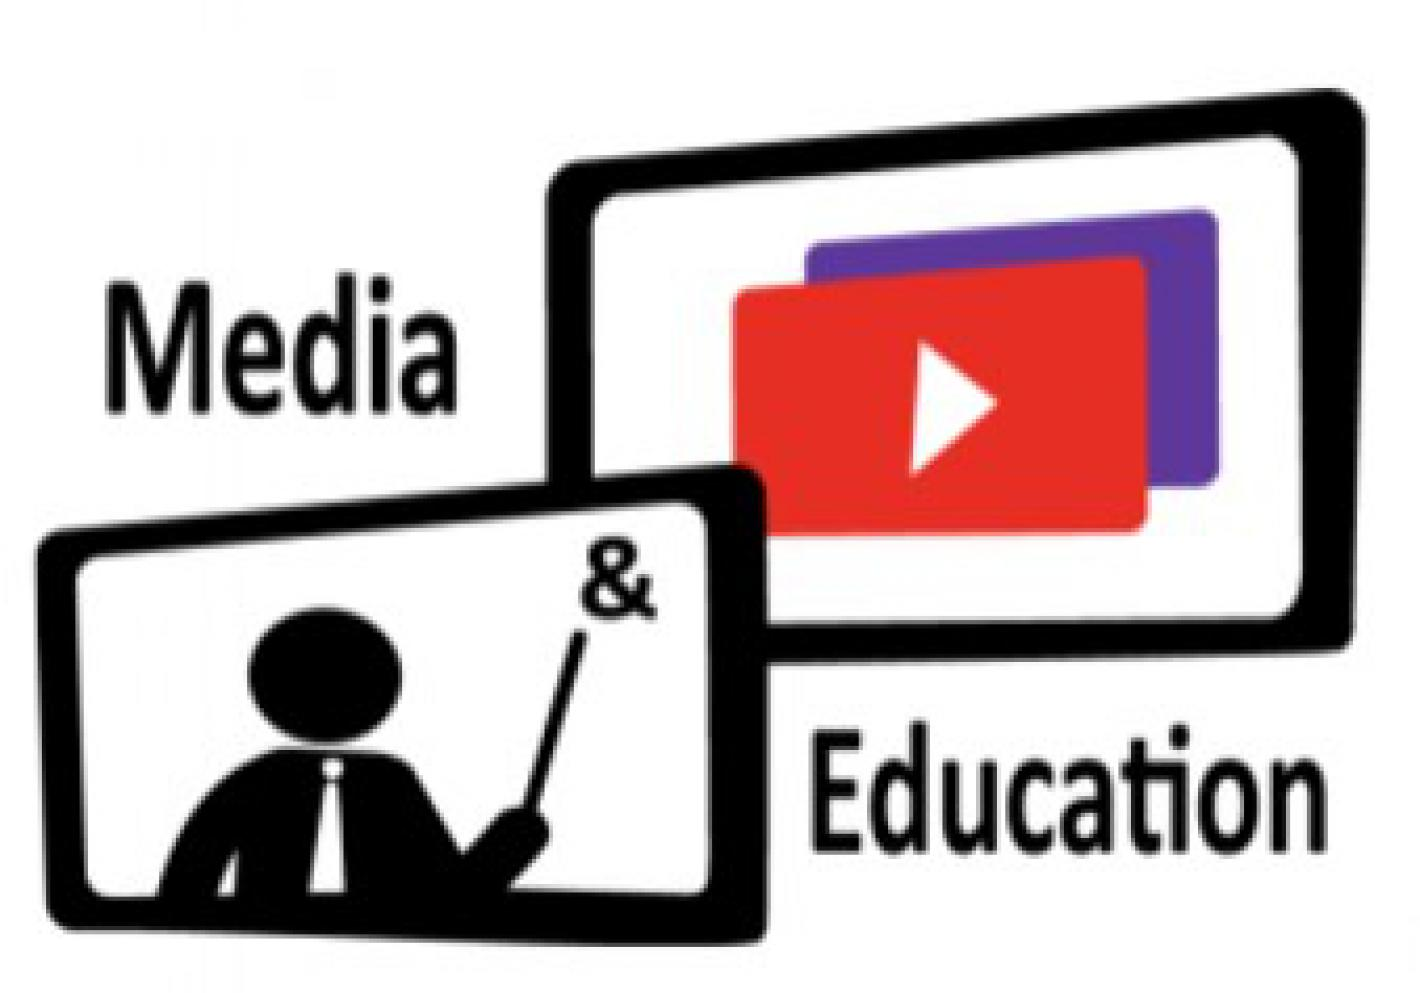 Media and Education